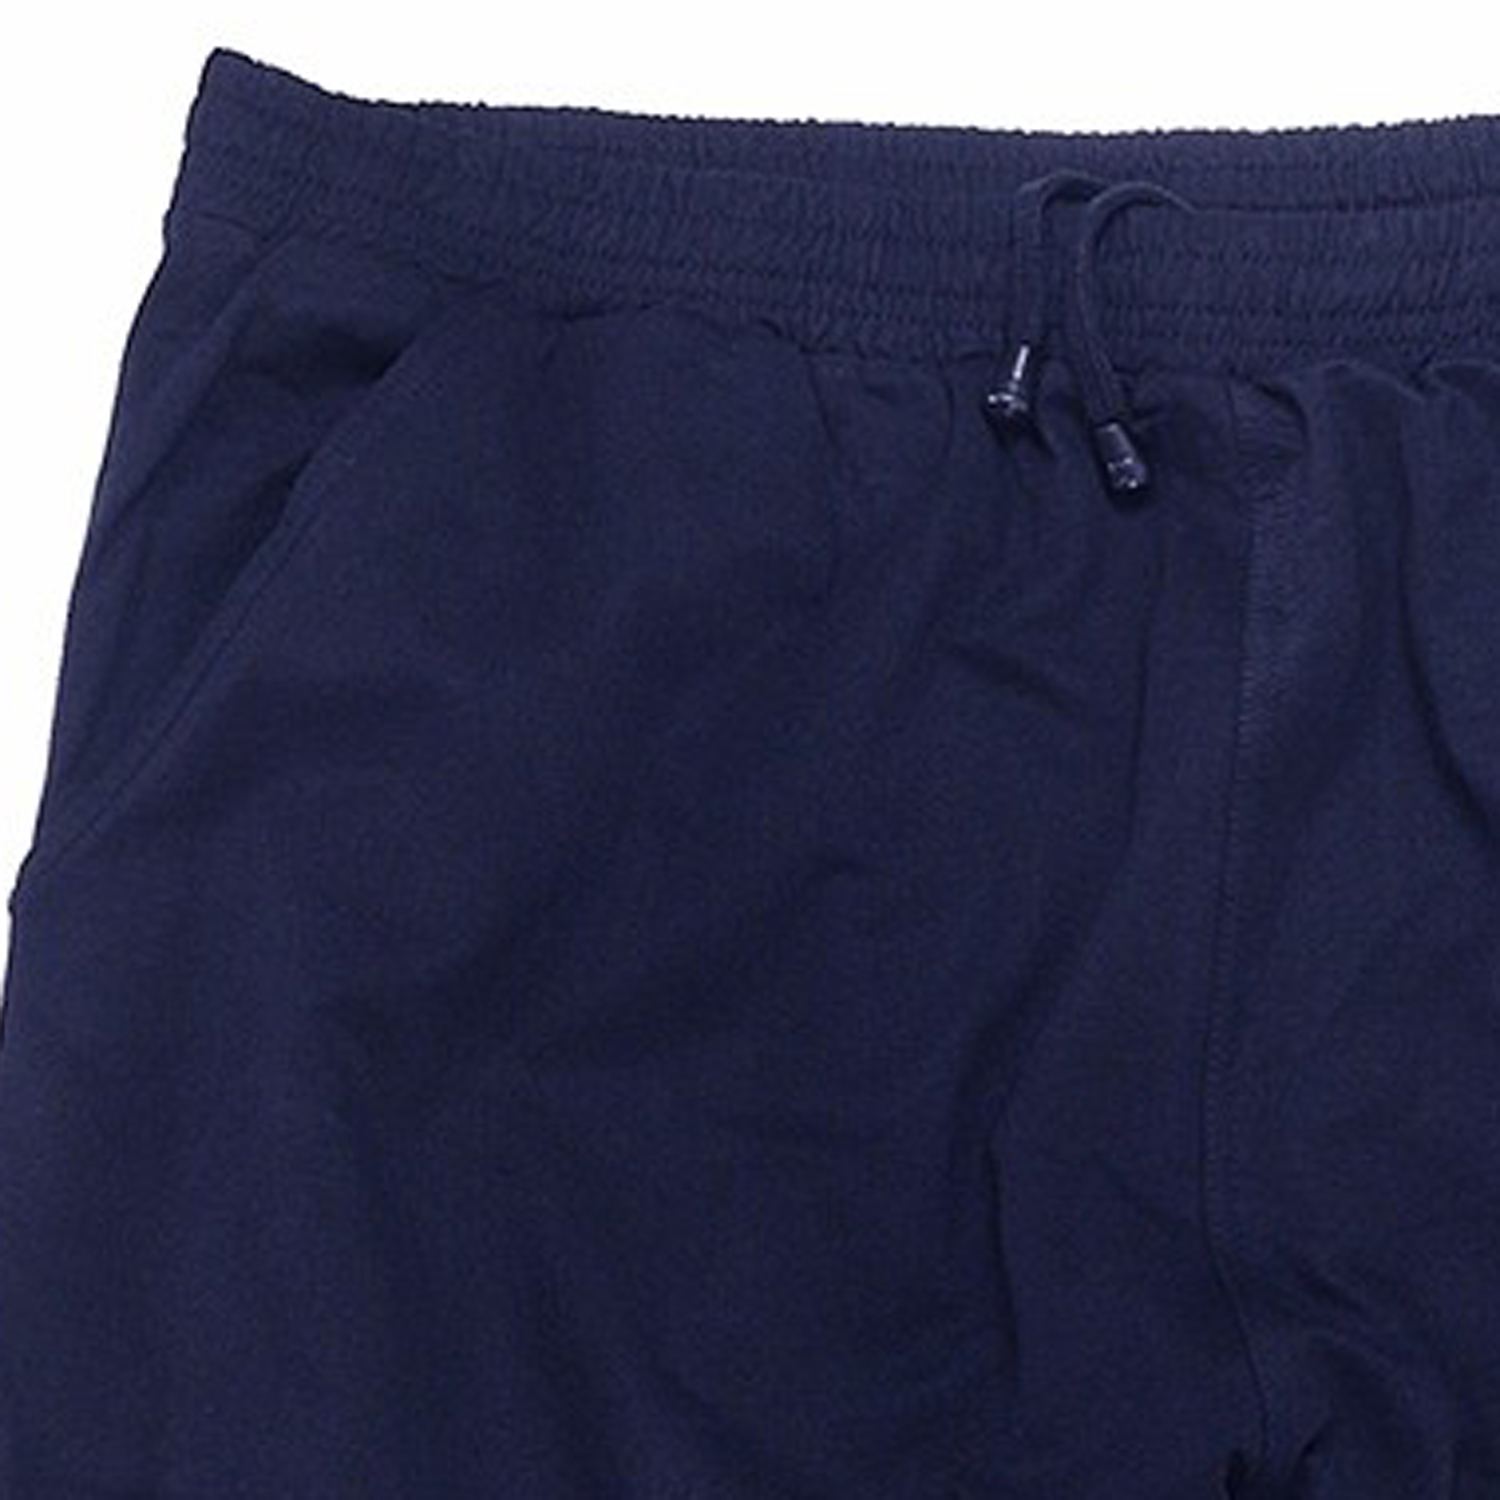 Detail Image to Blue sweat pants by Adamo in plus sizes up to 14XL